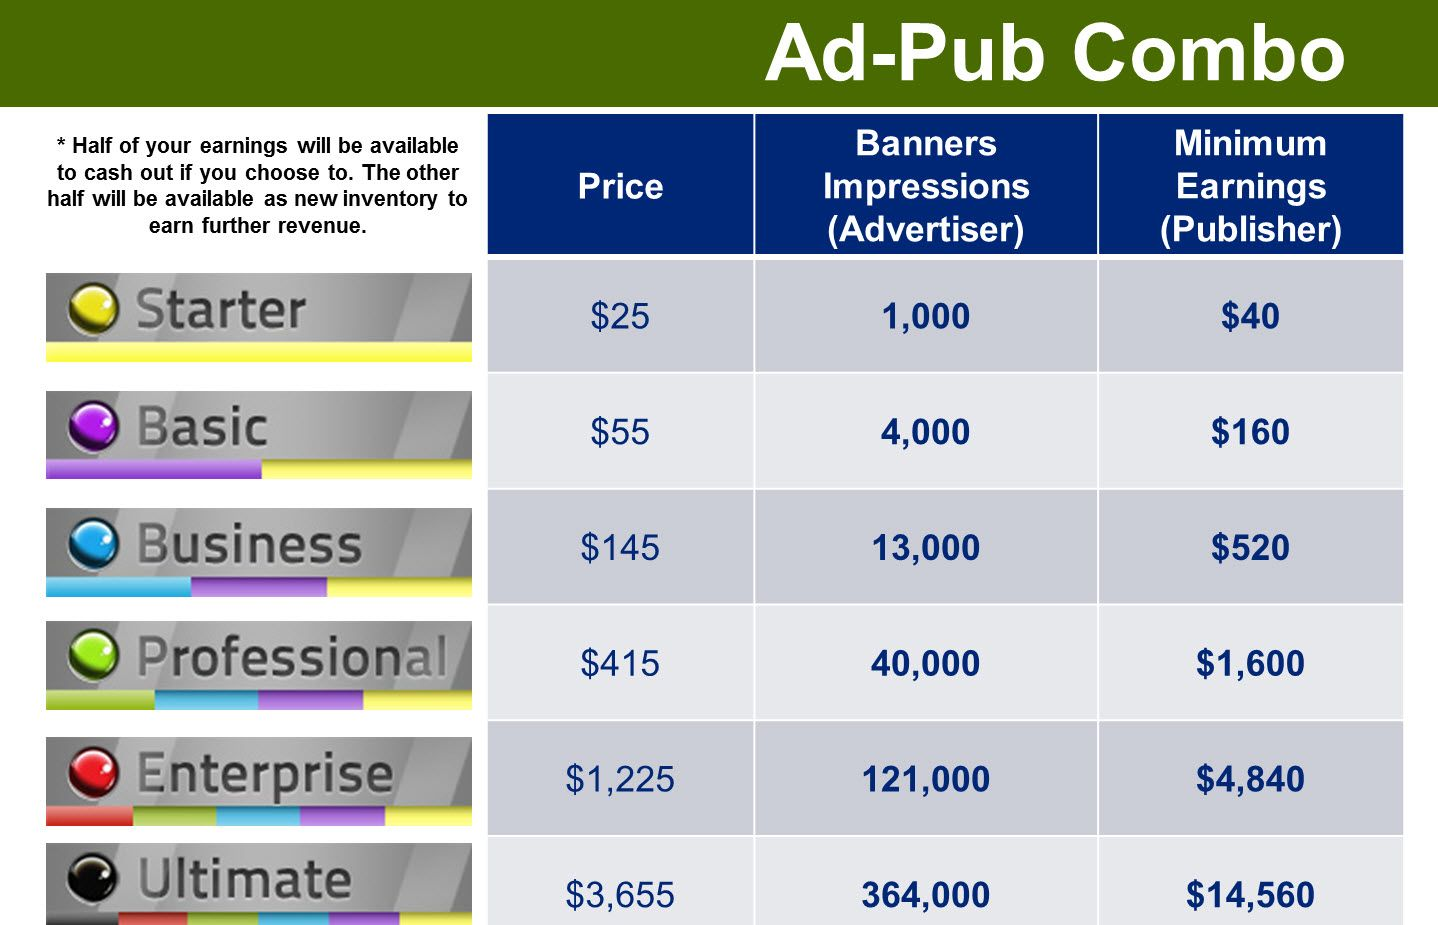 The Packages Banner ads, Travel and tourism